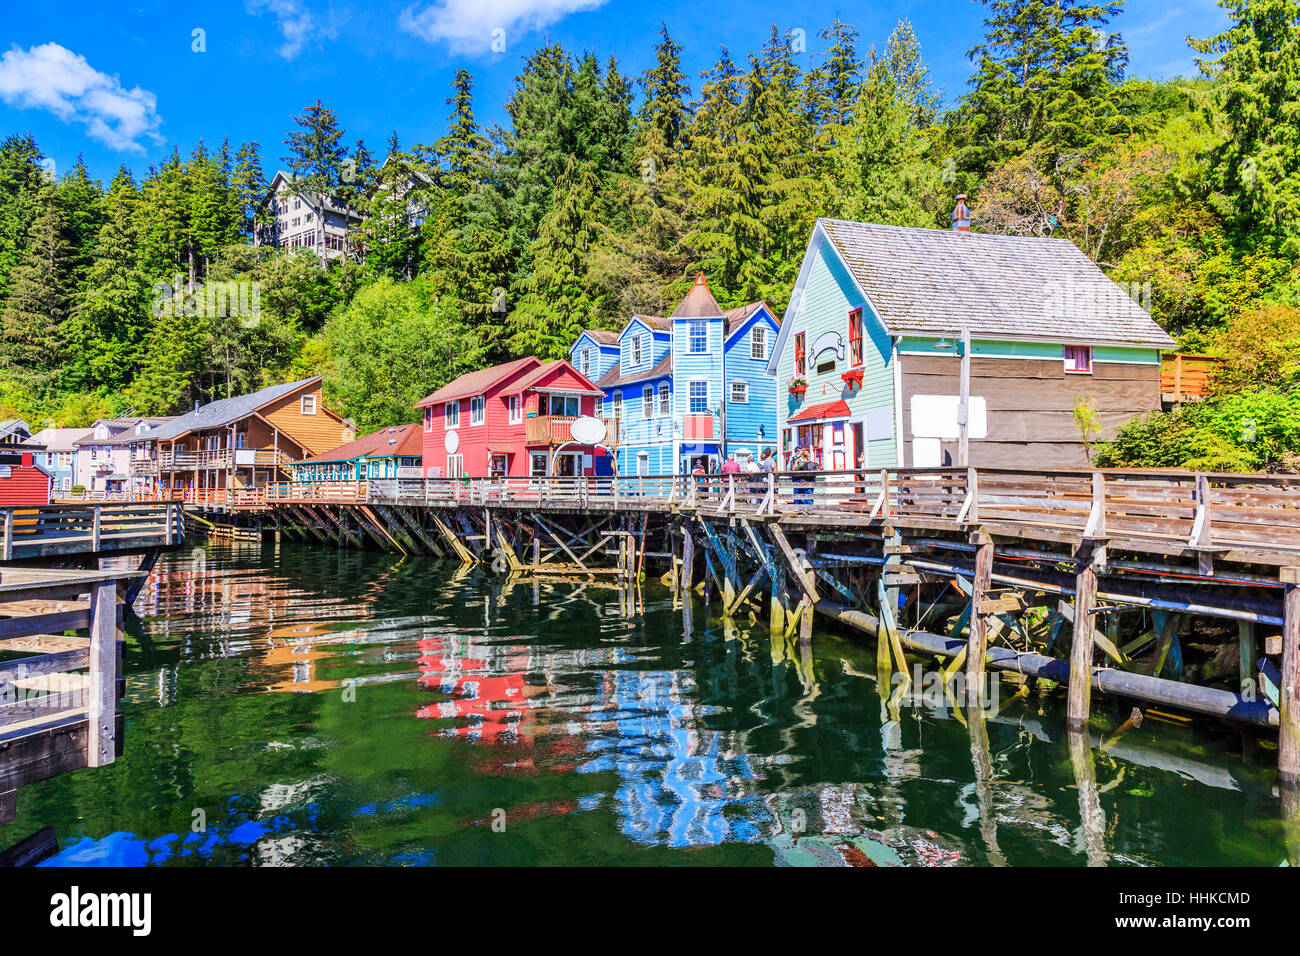 Ketchikan, Alaska. Creek Street, le quartier historique de broadwalk. Photo Stock